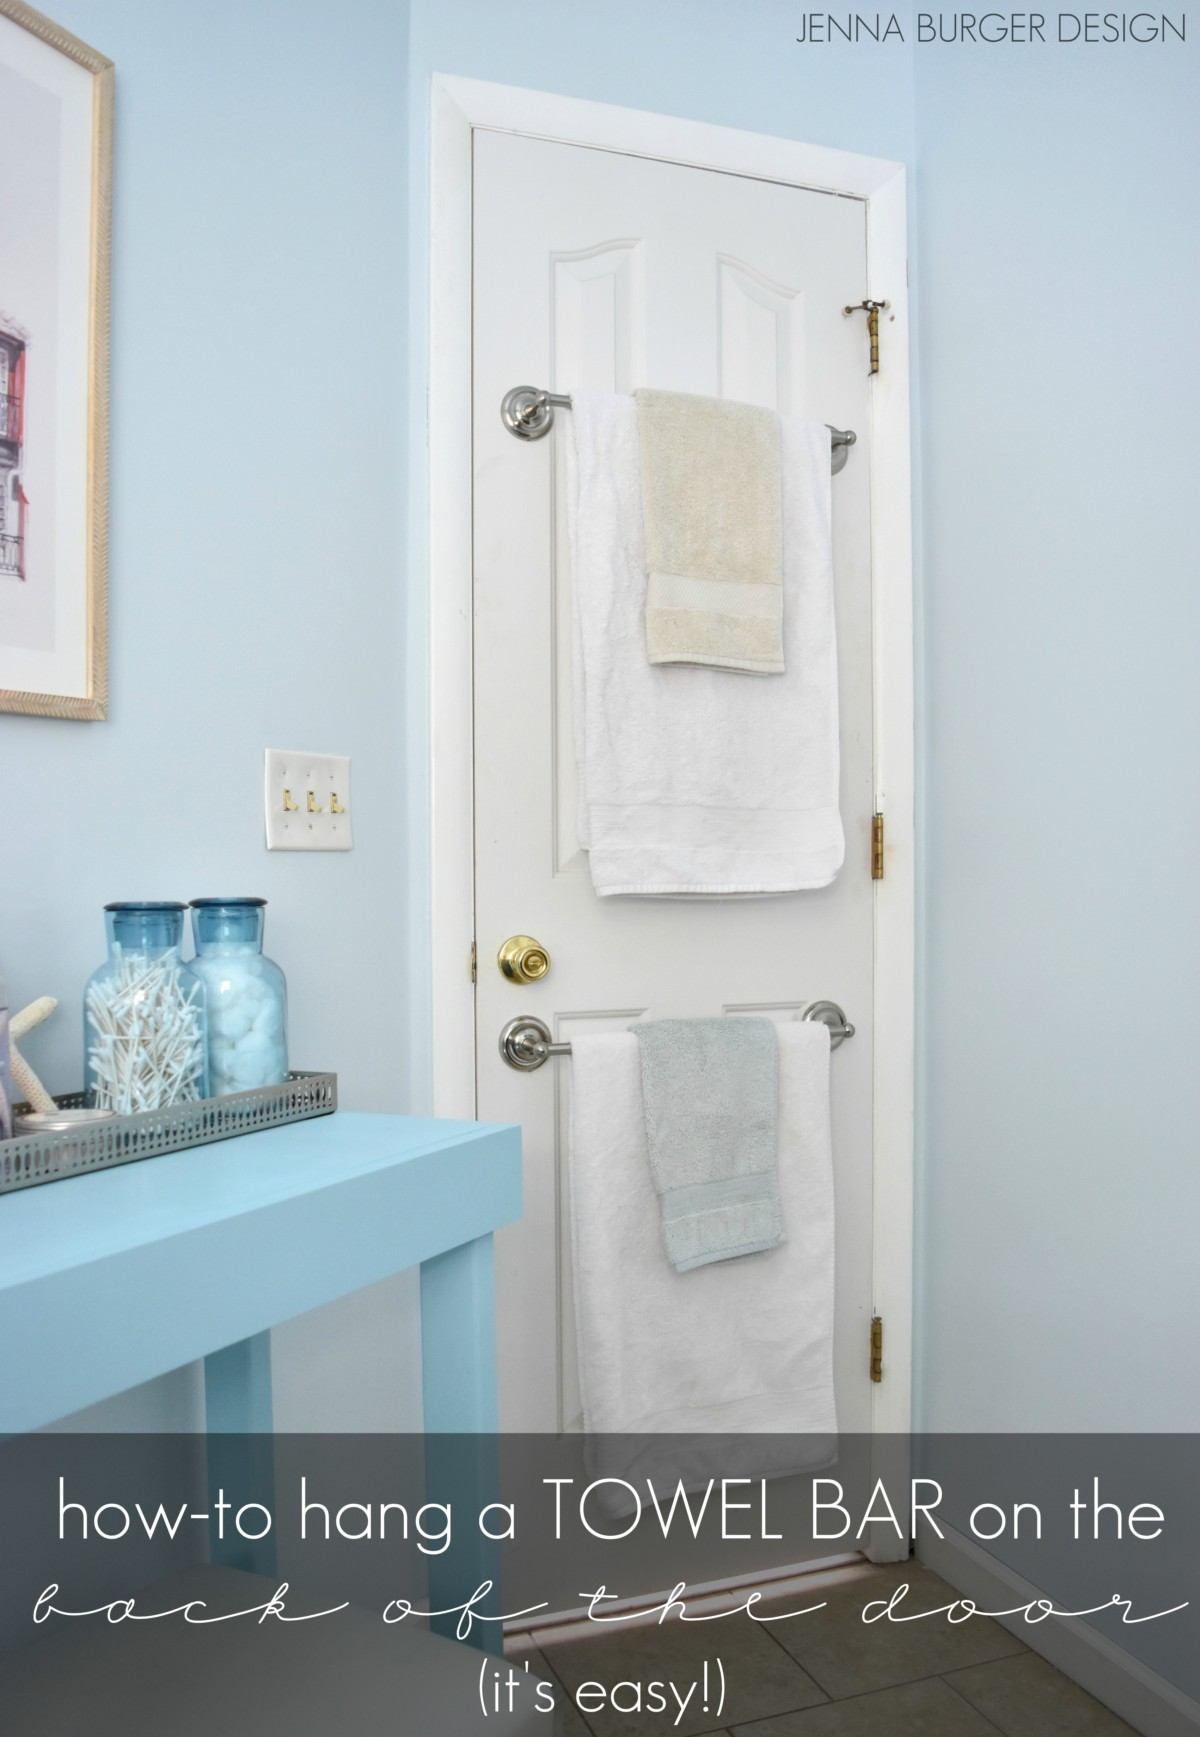 How-To mount a TOWEL BAR on a hollow core door to save on space & Back-of-the-Door Towel Bar - Jenna Burger pezcame.com